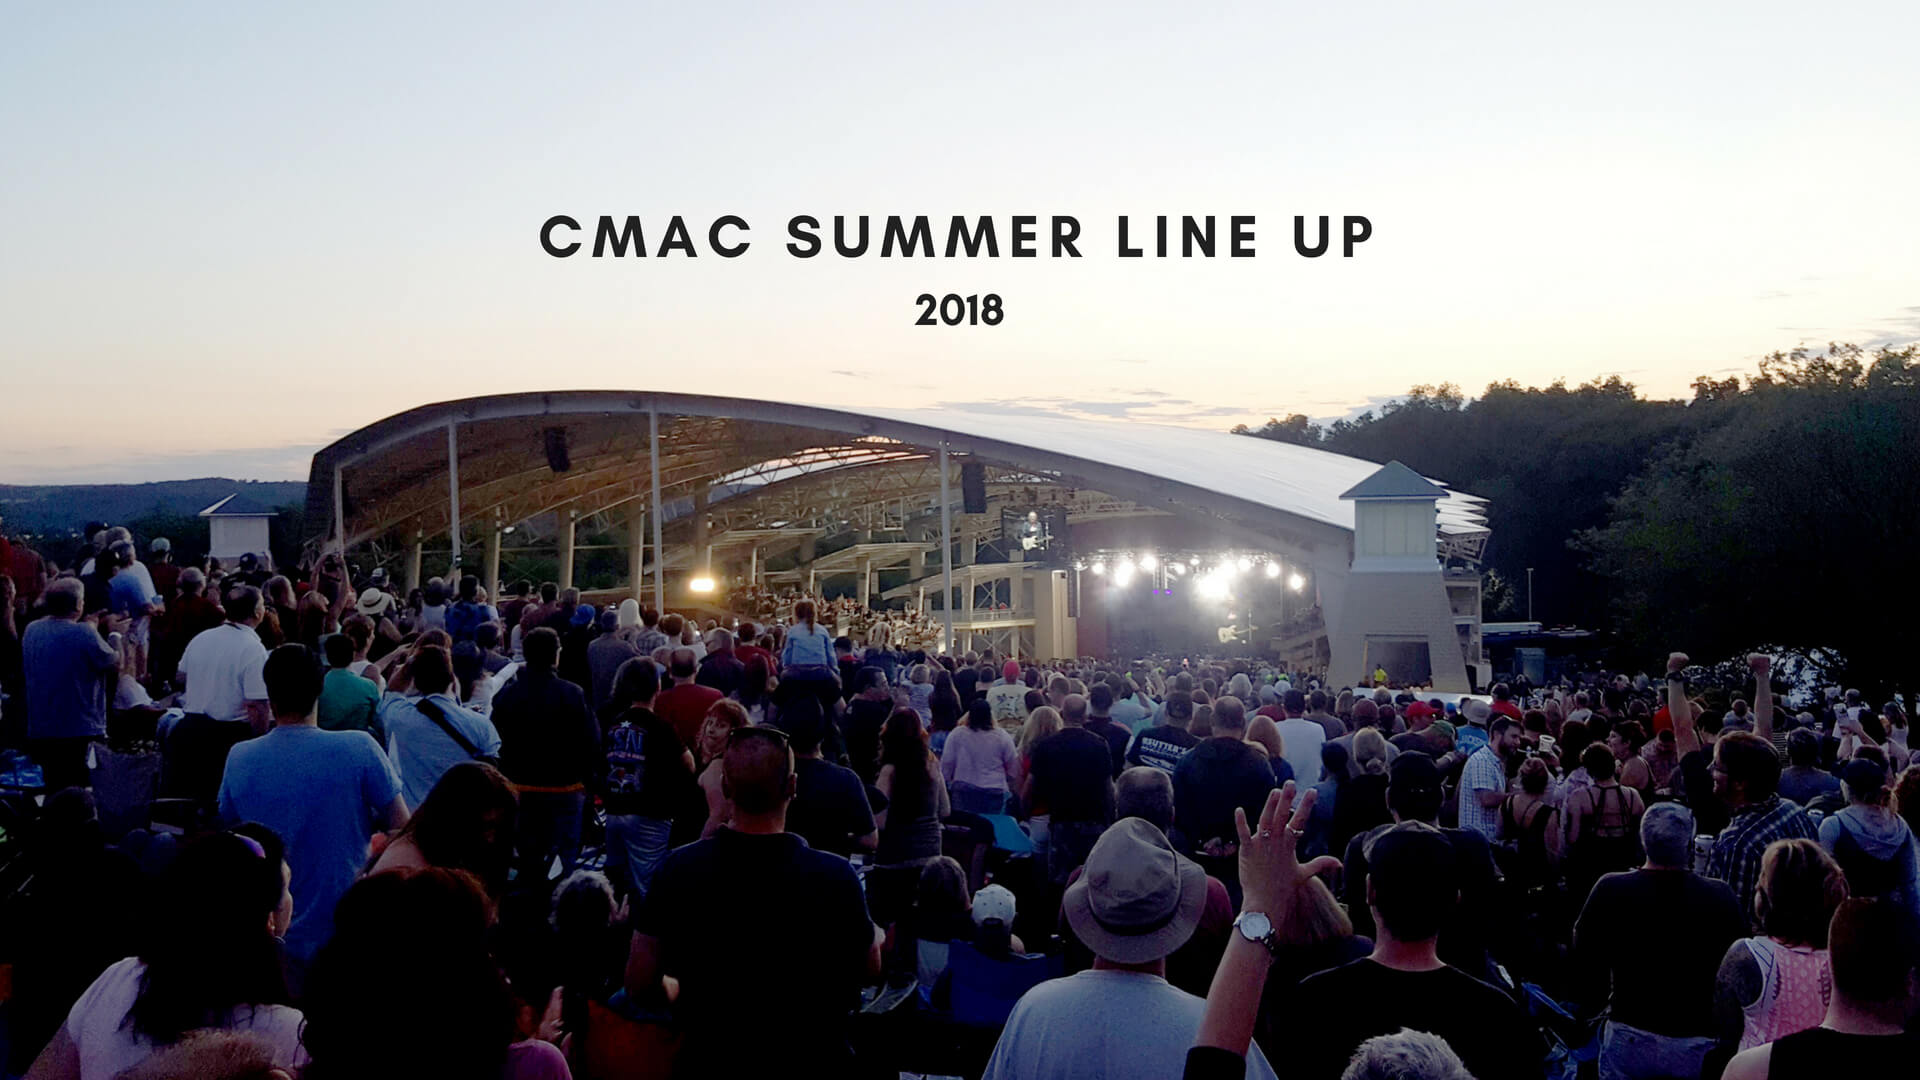 2018 CMAC Summer Line Up